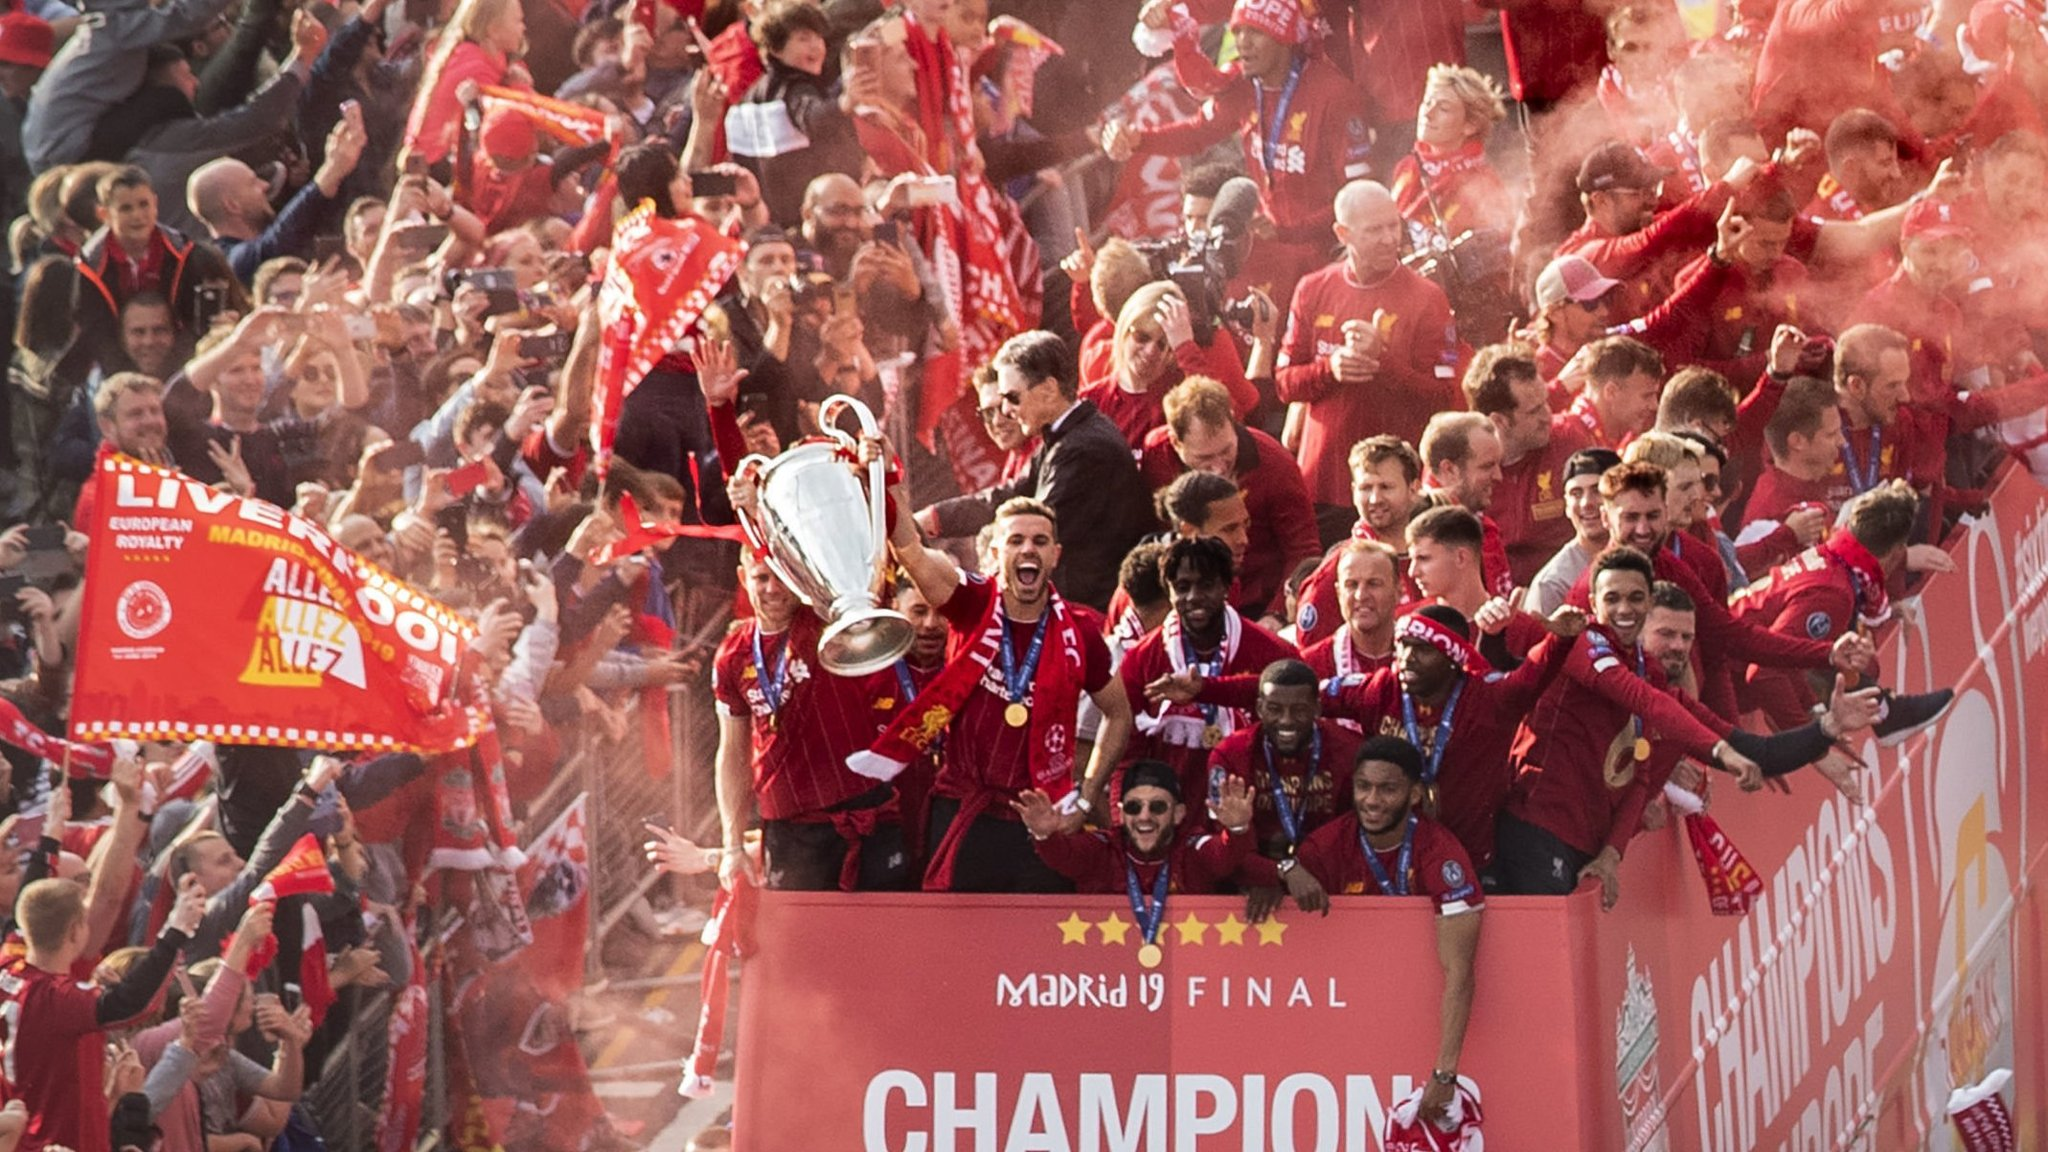 Liverpool win Champions League battle of budgets | Financial